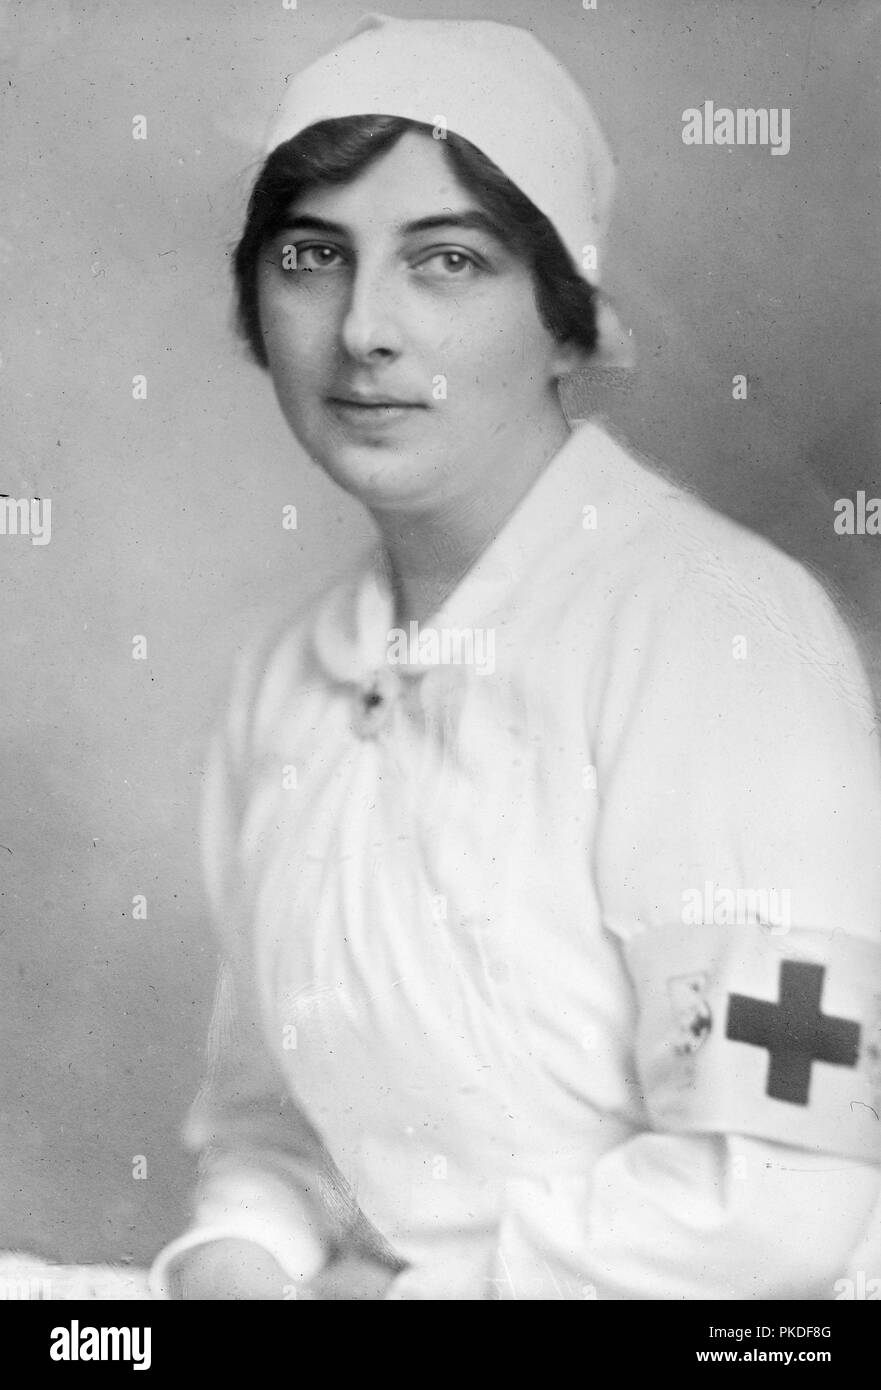 Countess Forgach Ilona von Rosty, Countess Forgach, served as a representative of the Hungarian Red Cross during World War I. - Stock Image